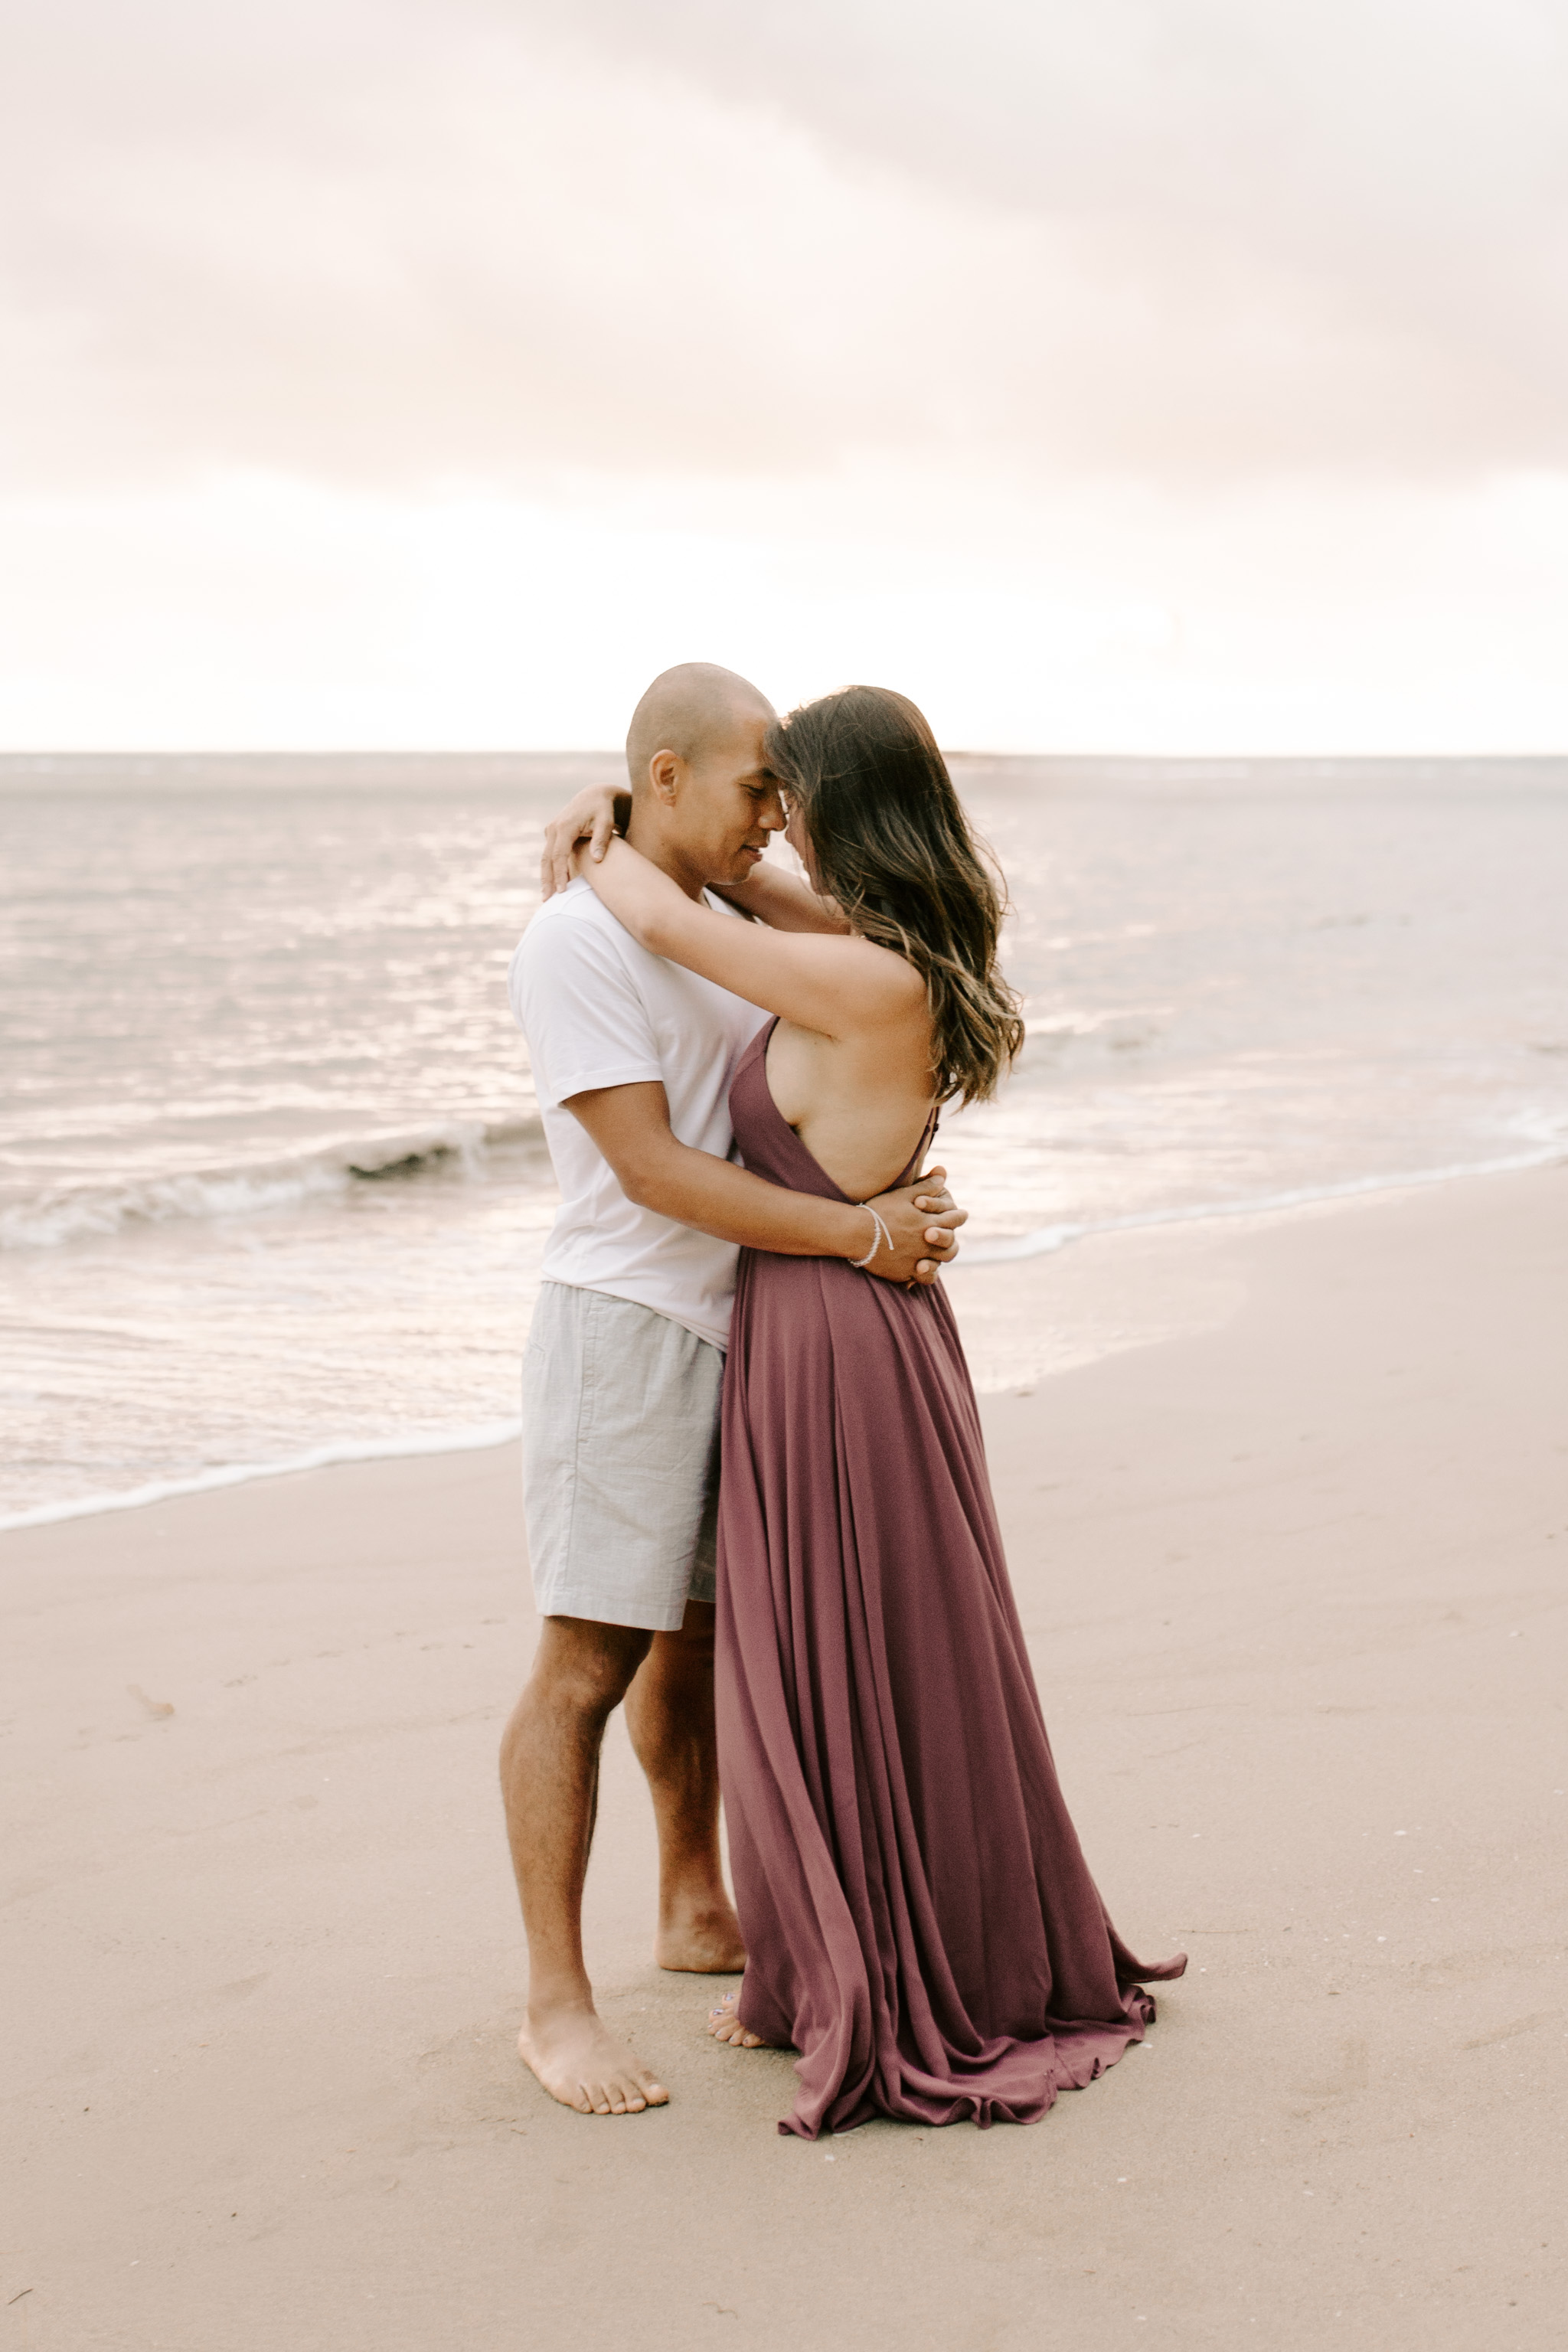 Beautiful hawaii beach couple photos by Oahu couple photographer Desiree Leilani